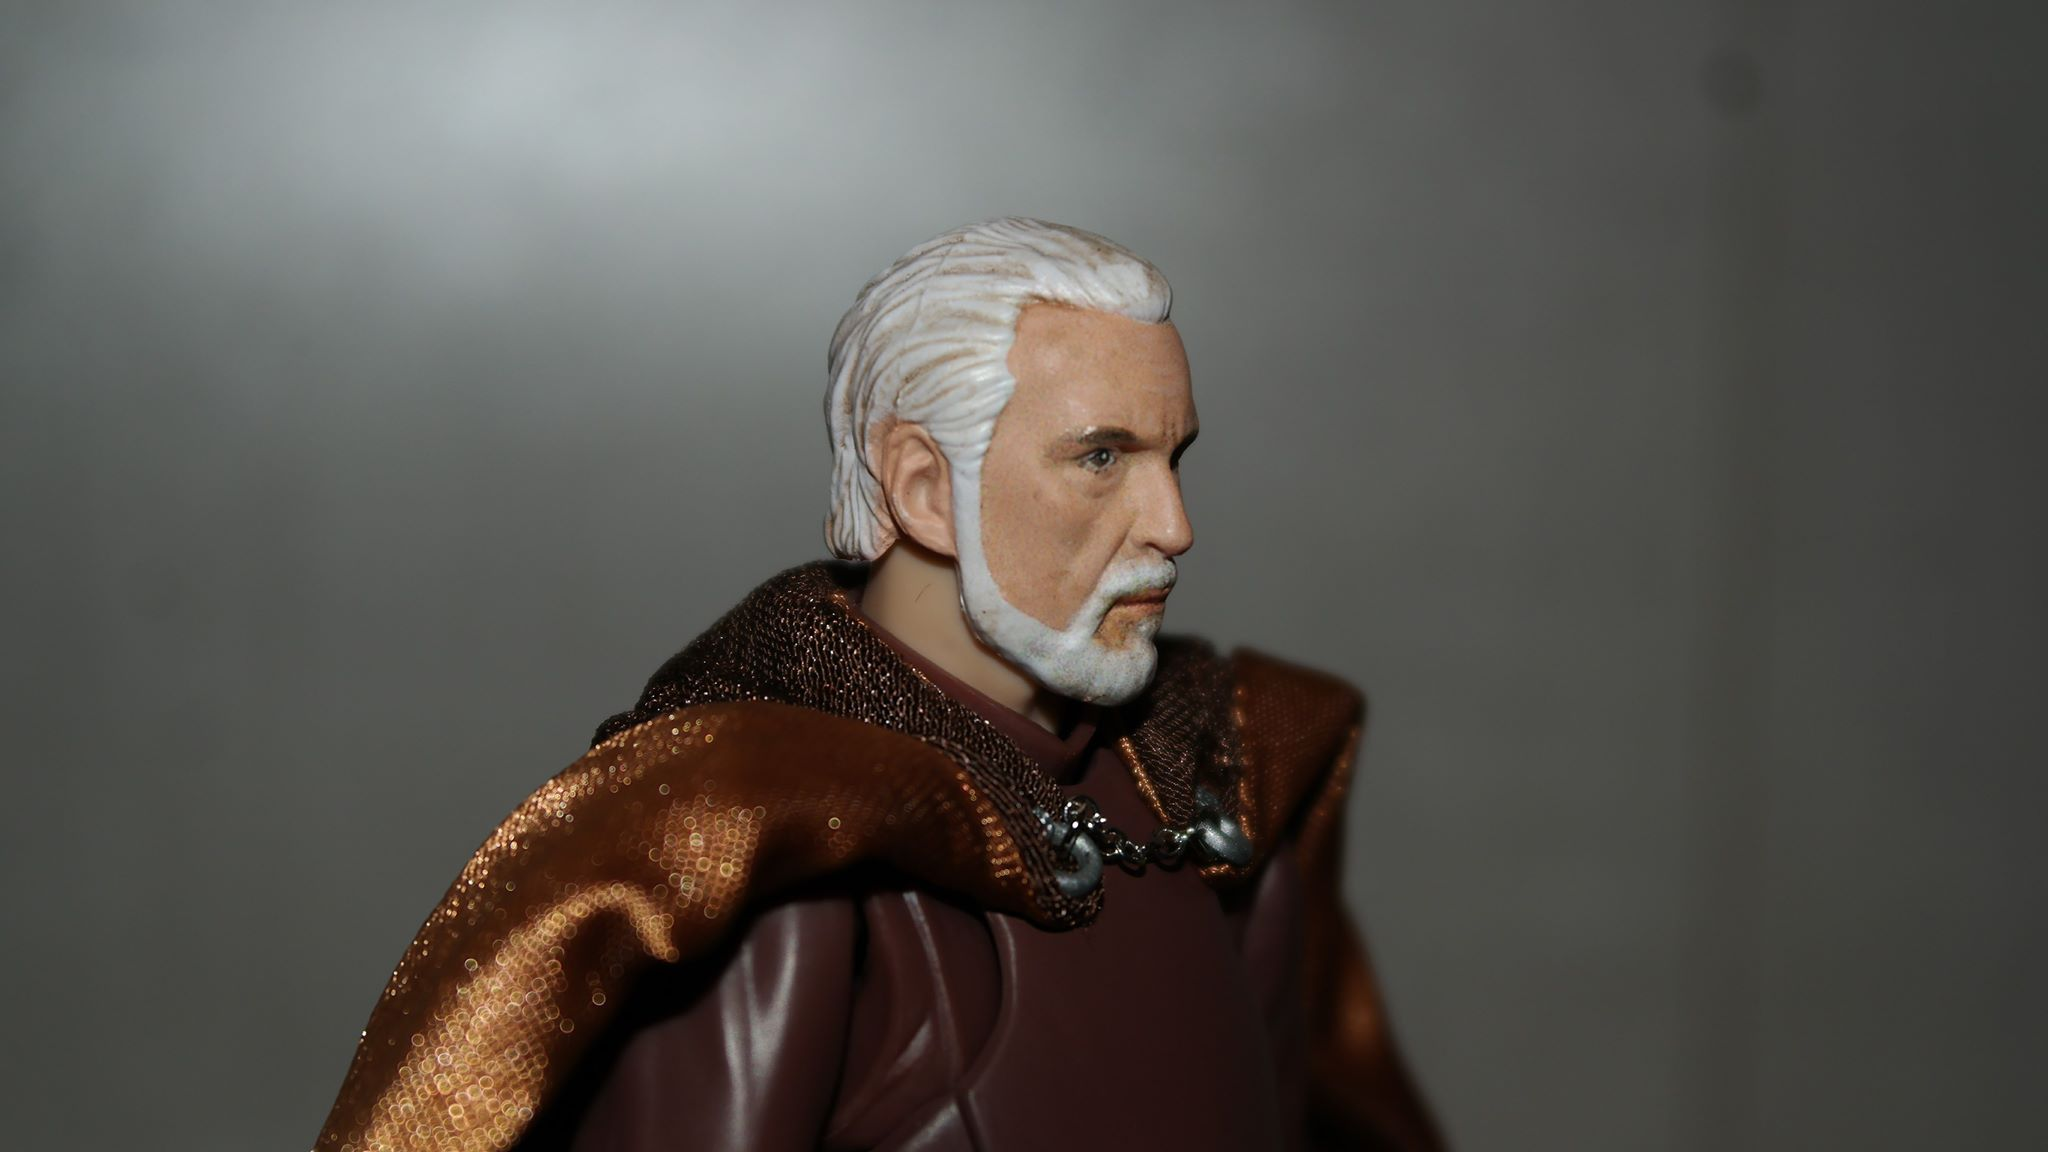 FOTF S.H Figuarts Star Wars Count Dooku Review 7